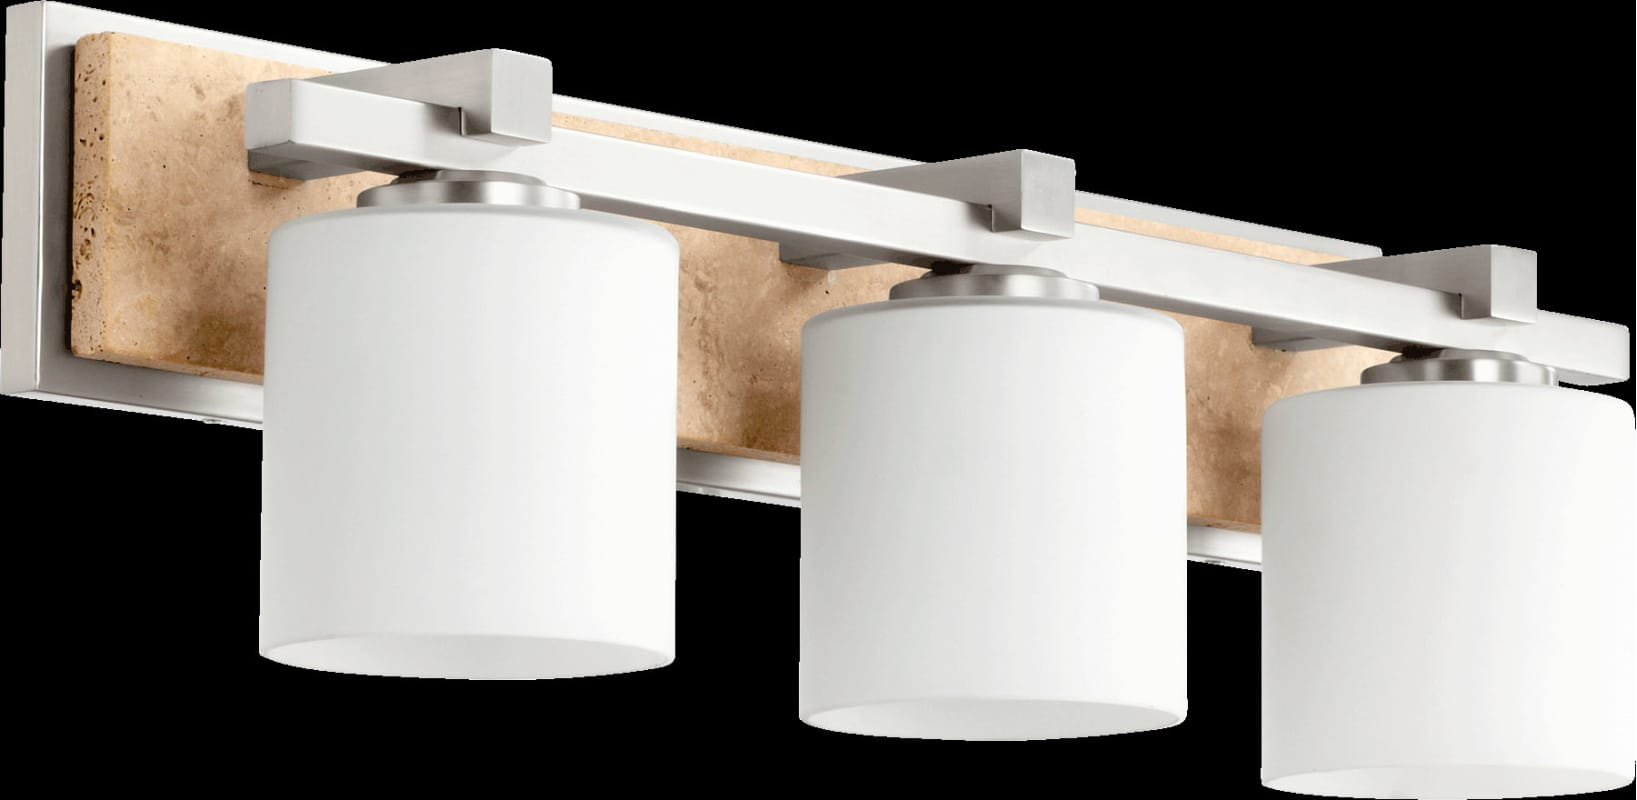 Height For Vanity Lights In Bathroom : Quorum International 5370-3-65 Satin Nickel 7.5